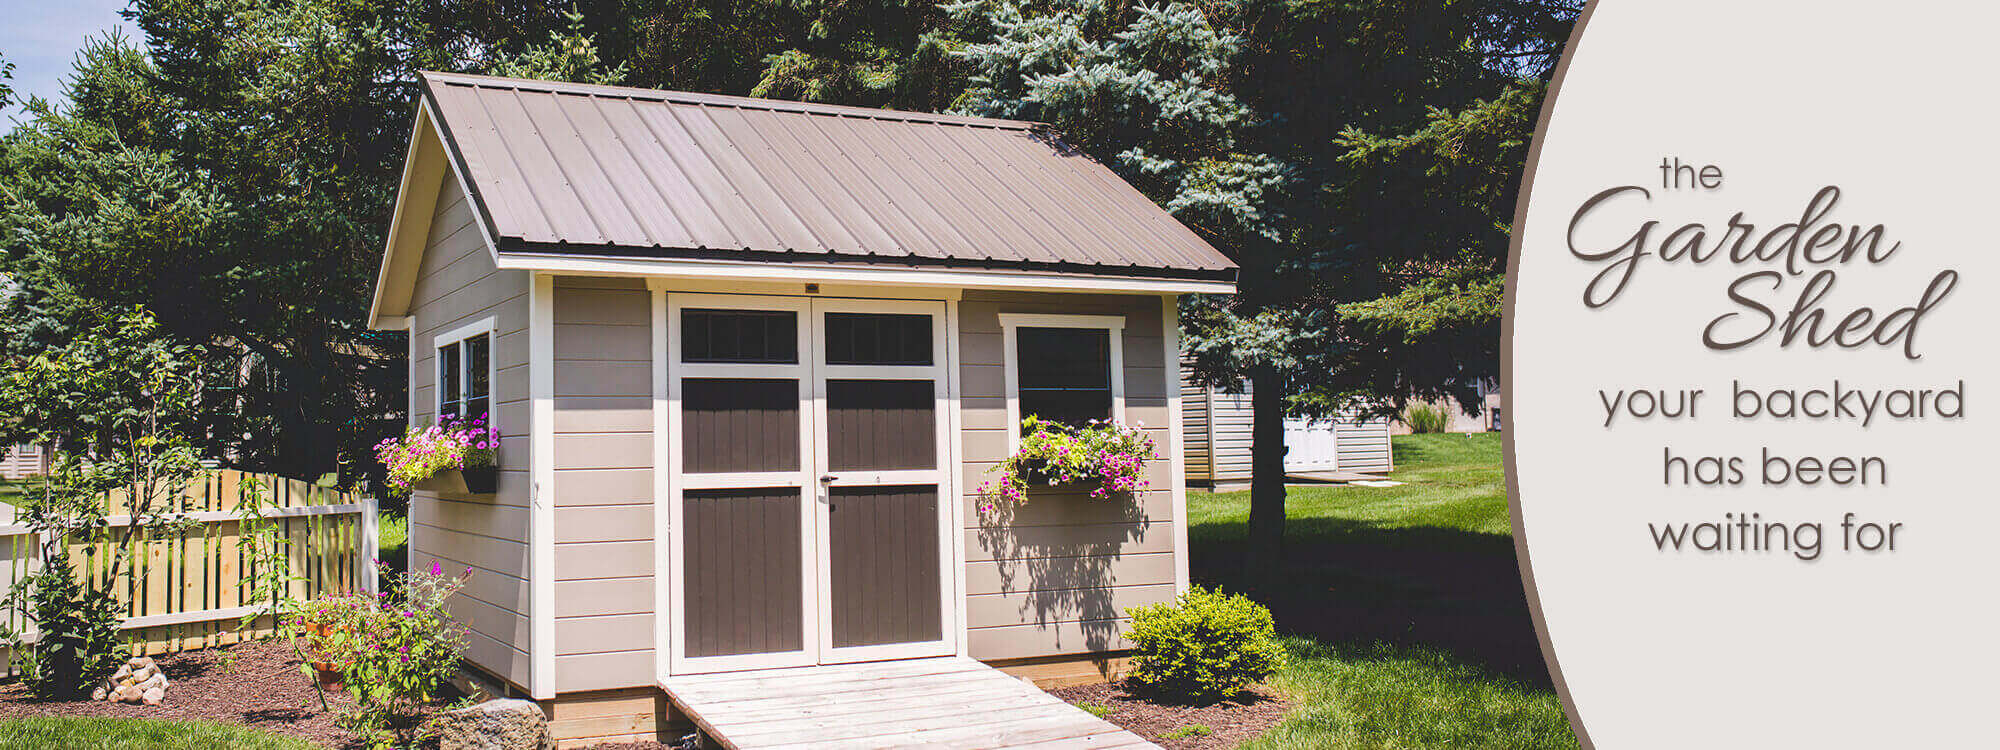 hostetlers lawn furniture and storage sheds hostetlers furniture - Garden Sheds Michigan